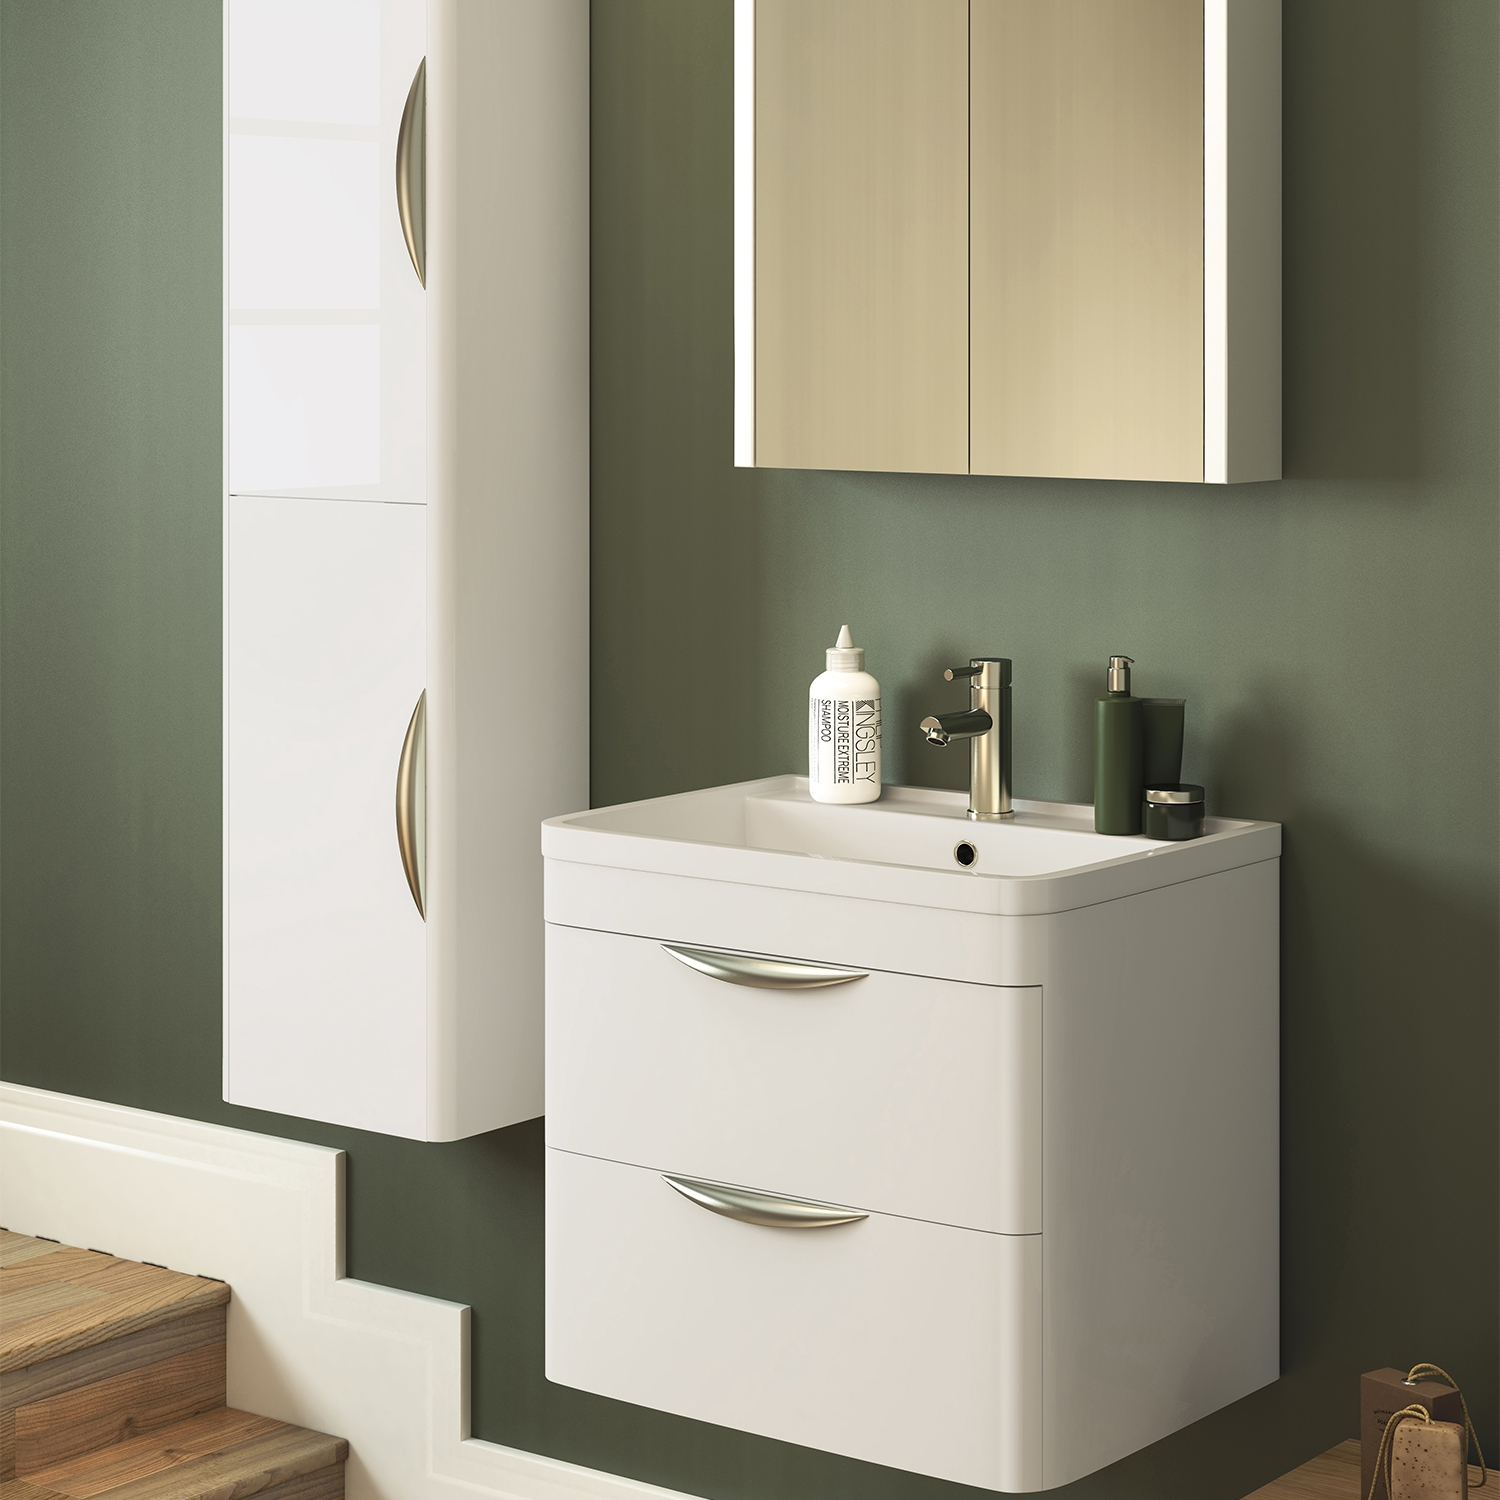 Premier Parade Wall Hung 2-Drawer Vanity Unit with Basin 600mm Wide - 1 Tap Hole